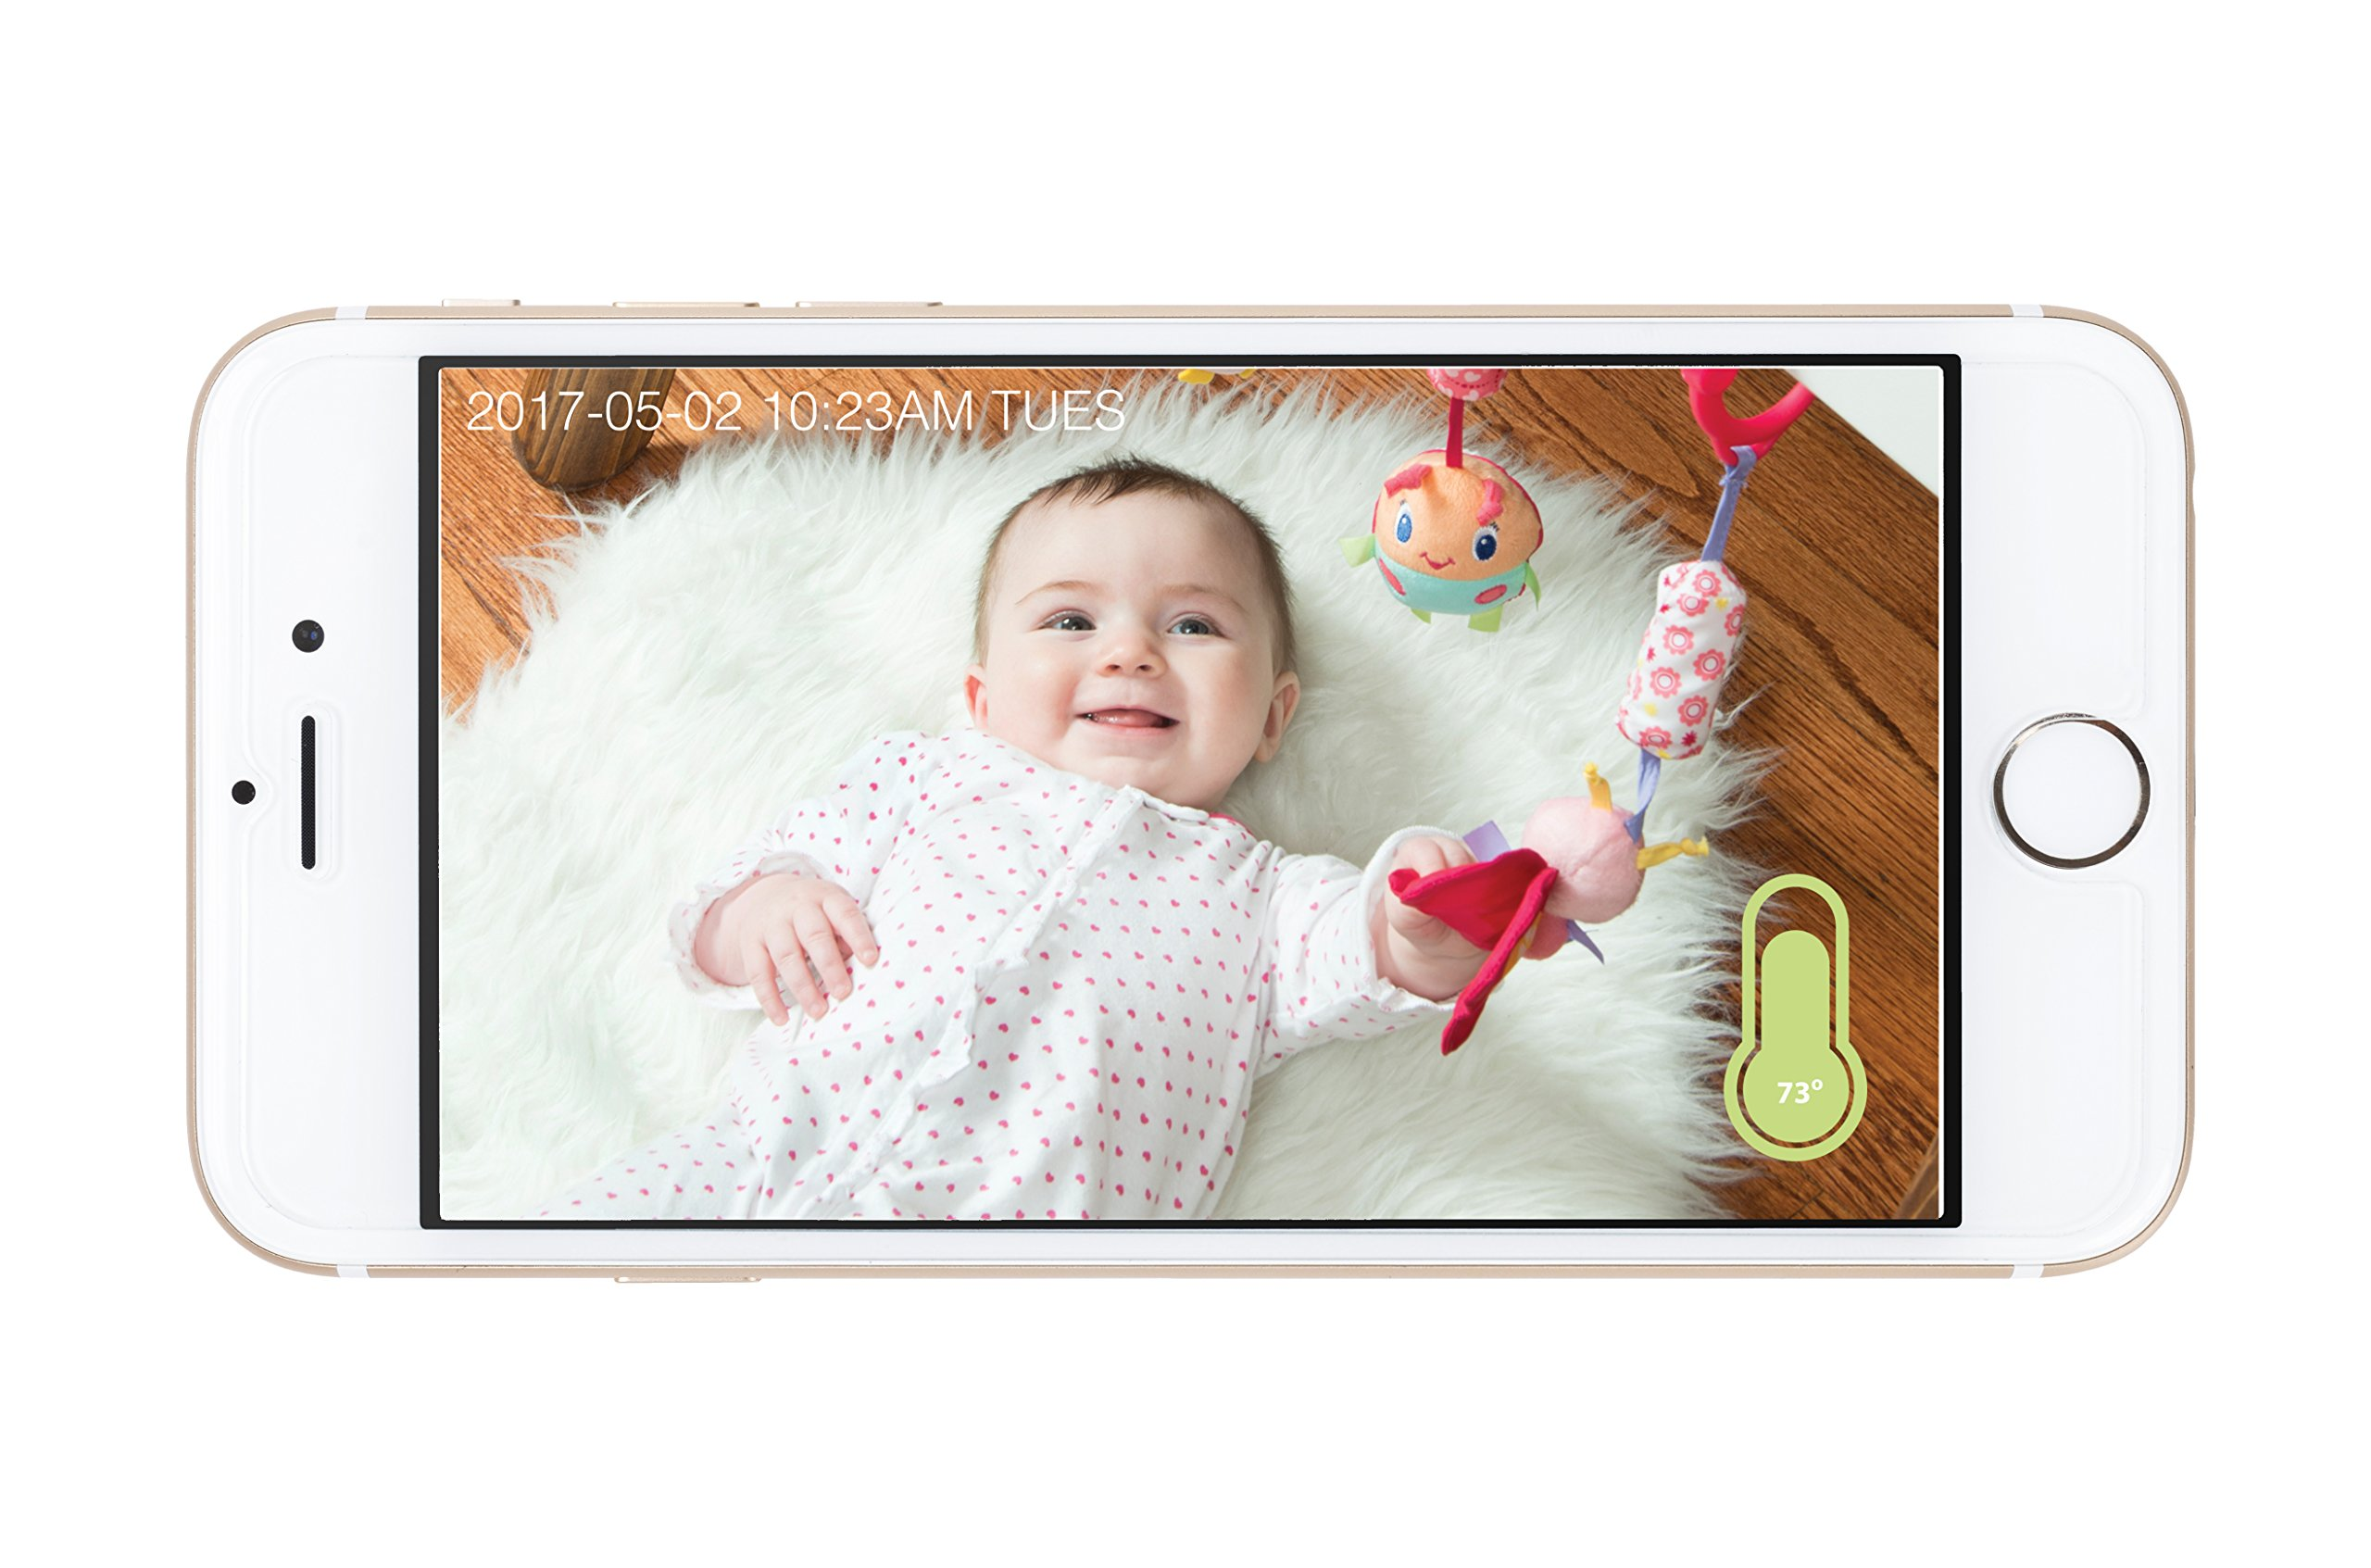 Project Nursery HD WiFi Video Baby Monitor System with Sound, Motion & Temperature Alerts & an App for iOS, Android and Any Smartphone or Tablet by Project Nursery (Image #3)